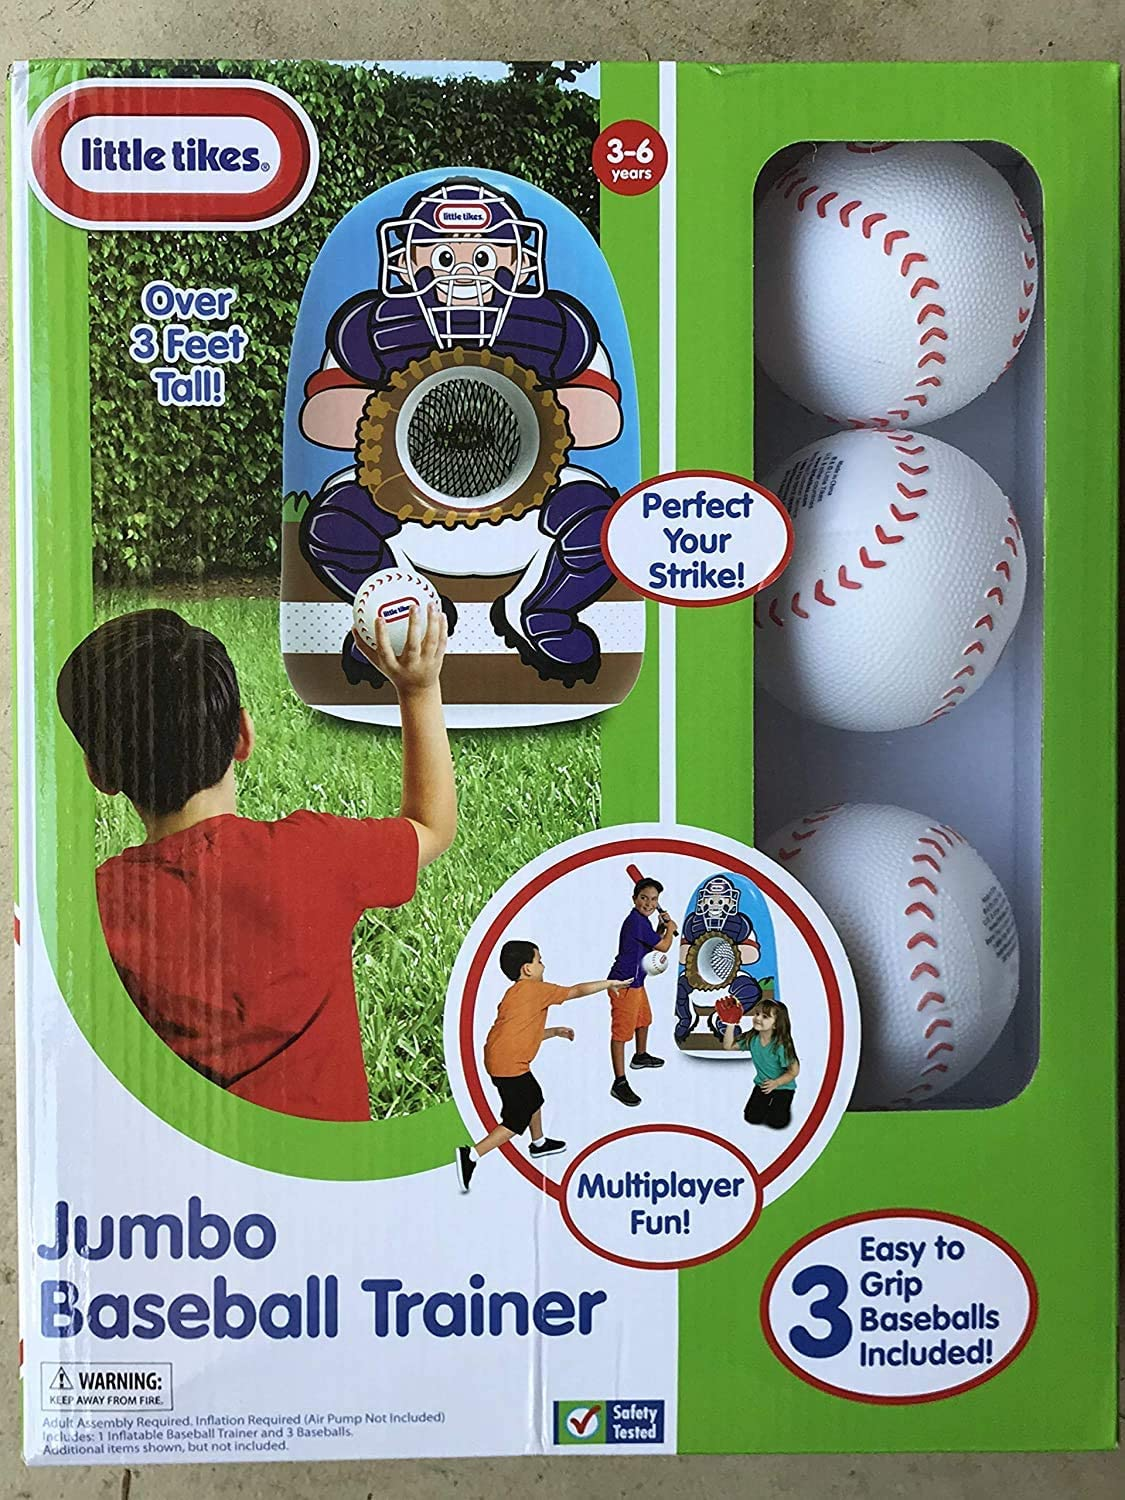 Little Tikes Inflatable Max Max 57% OFF 85% OFF Baseball Trainer